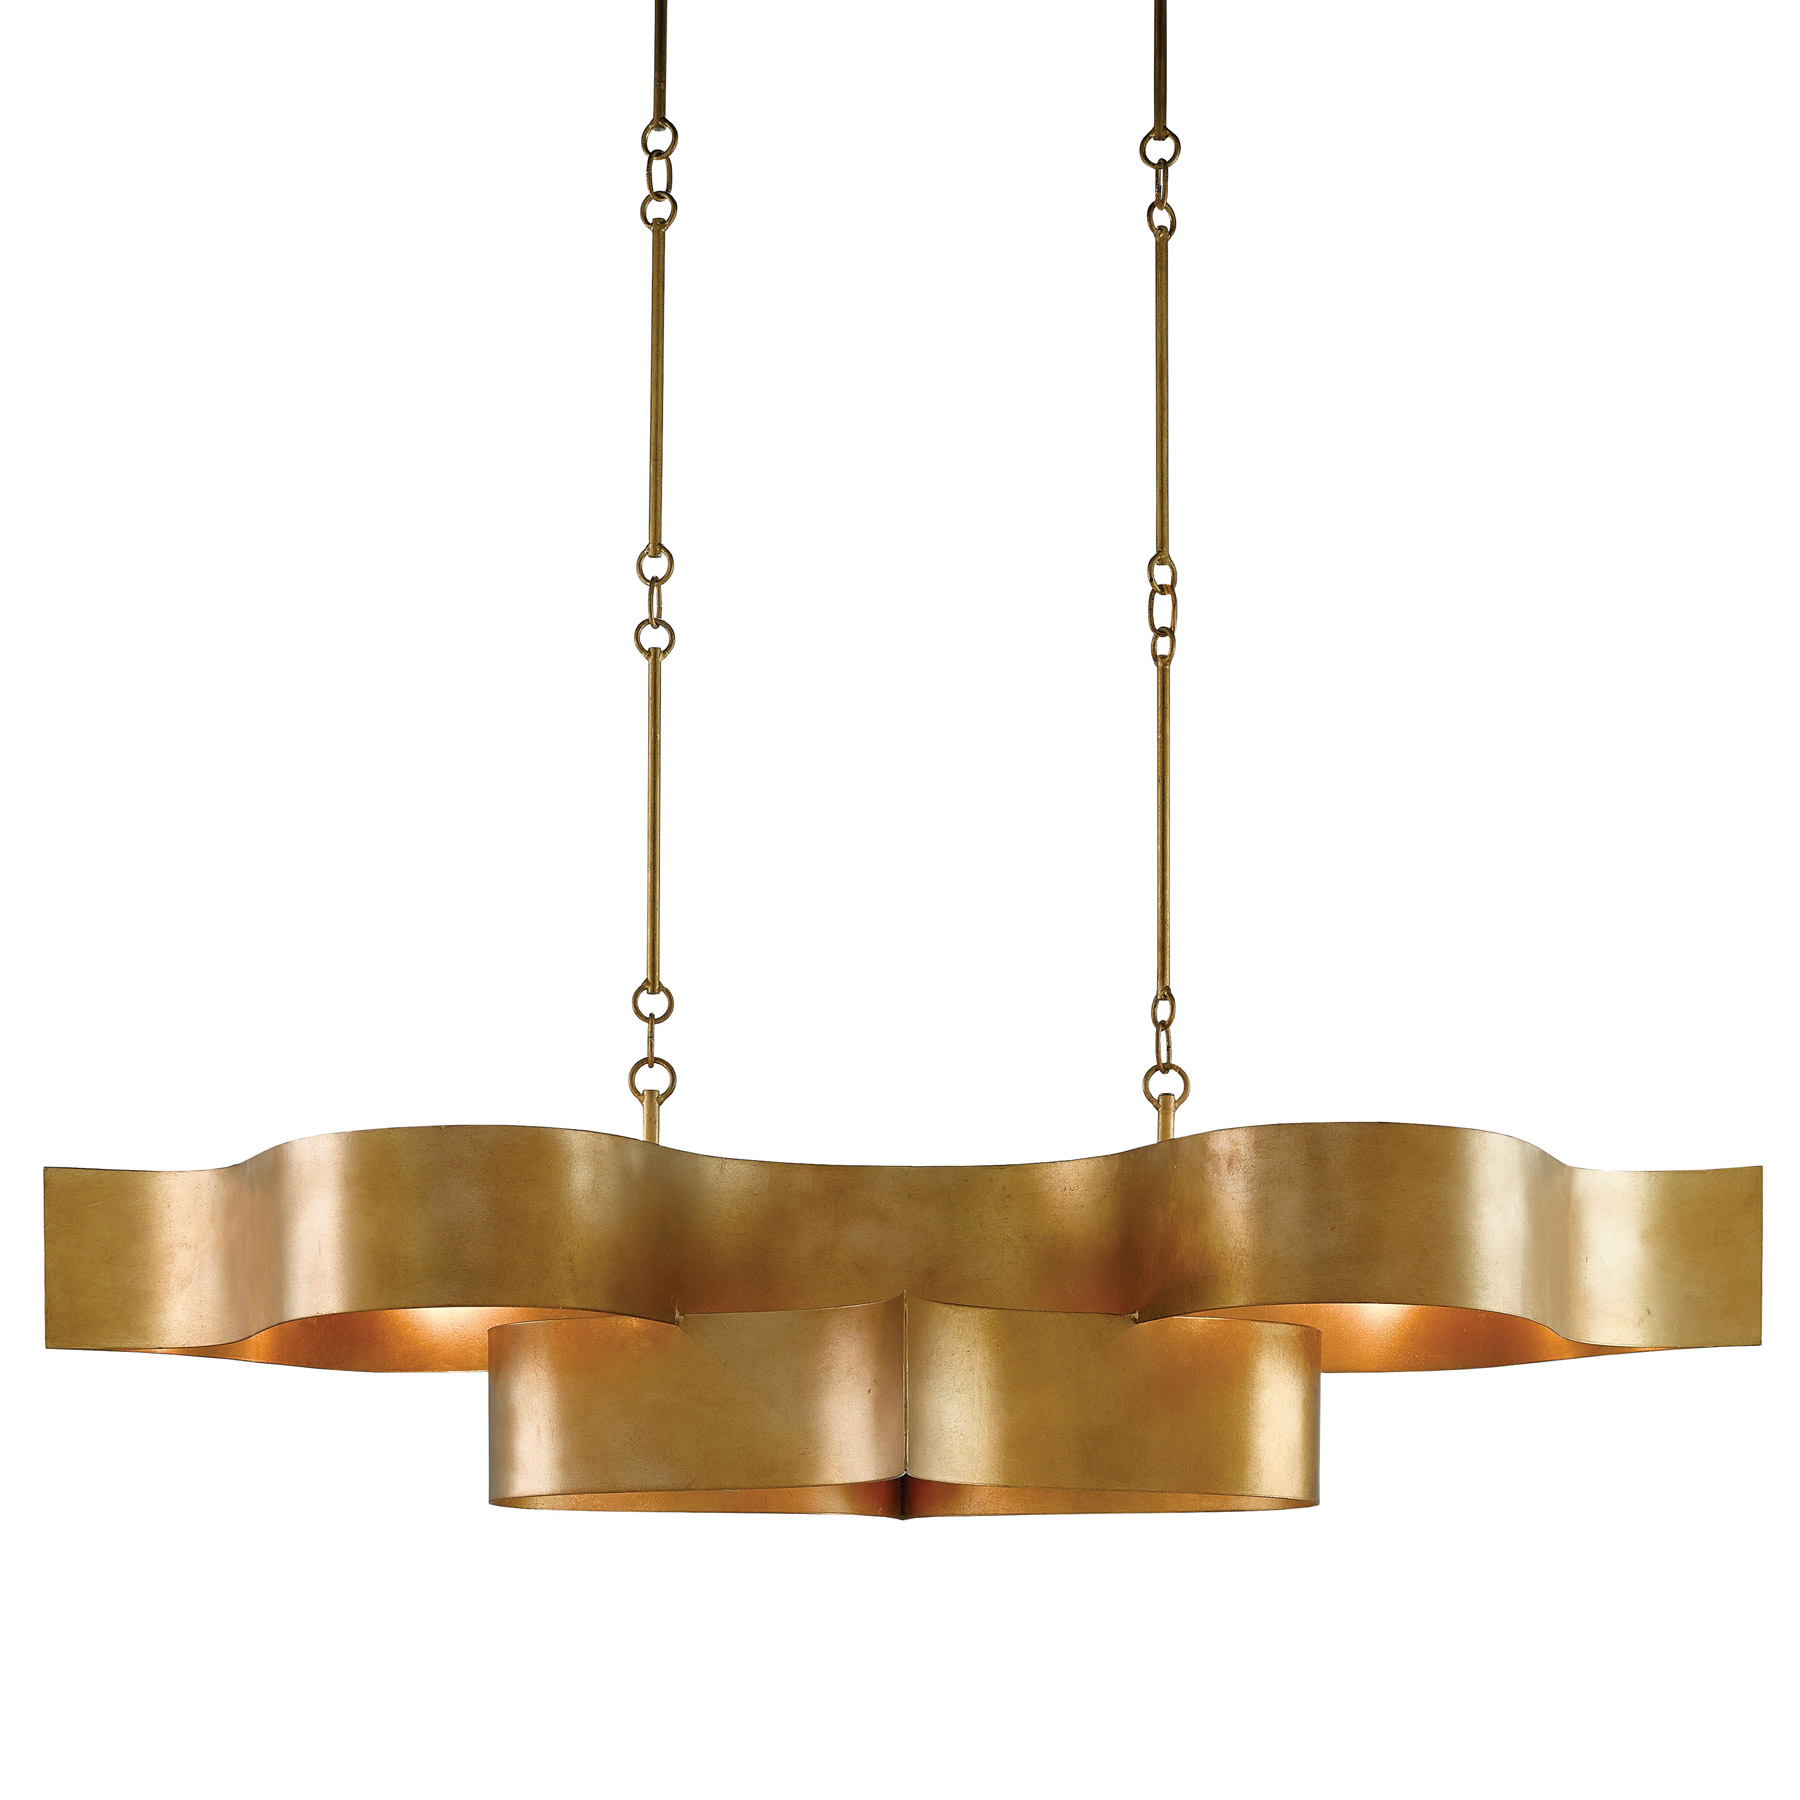 Currey and company 9000 0046 grand lotus oval chandelier island light aloadofball Gallery